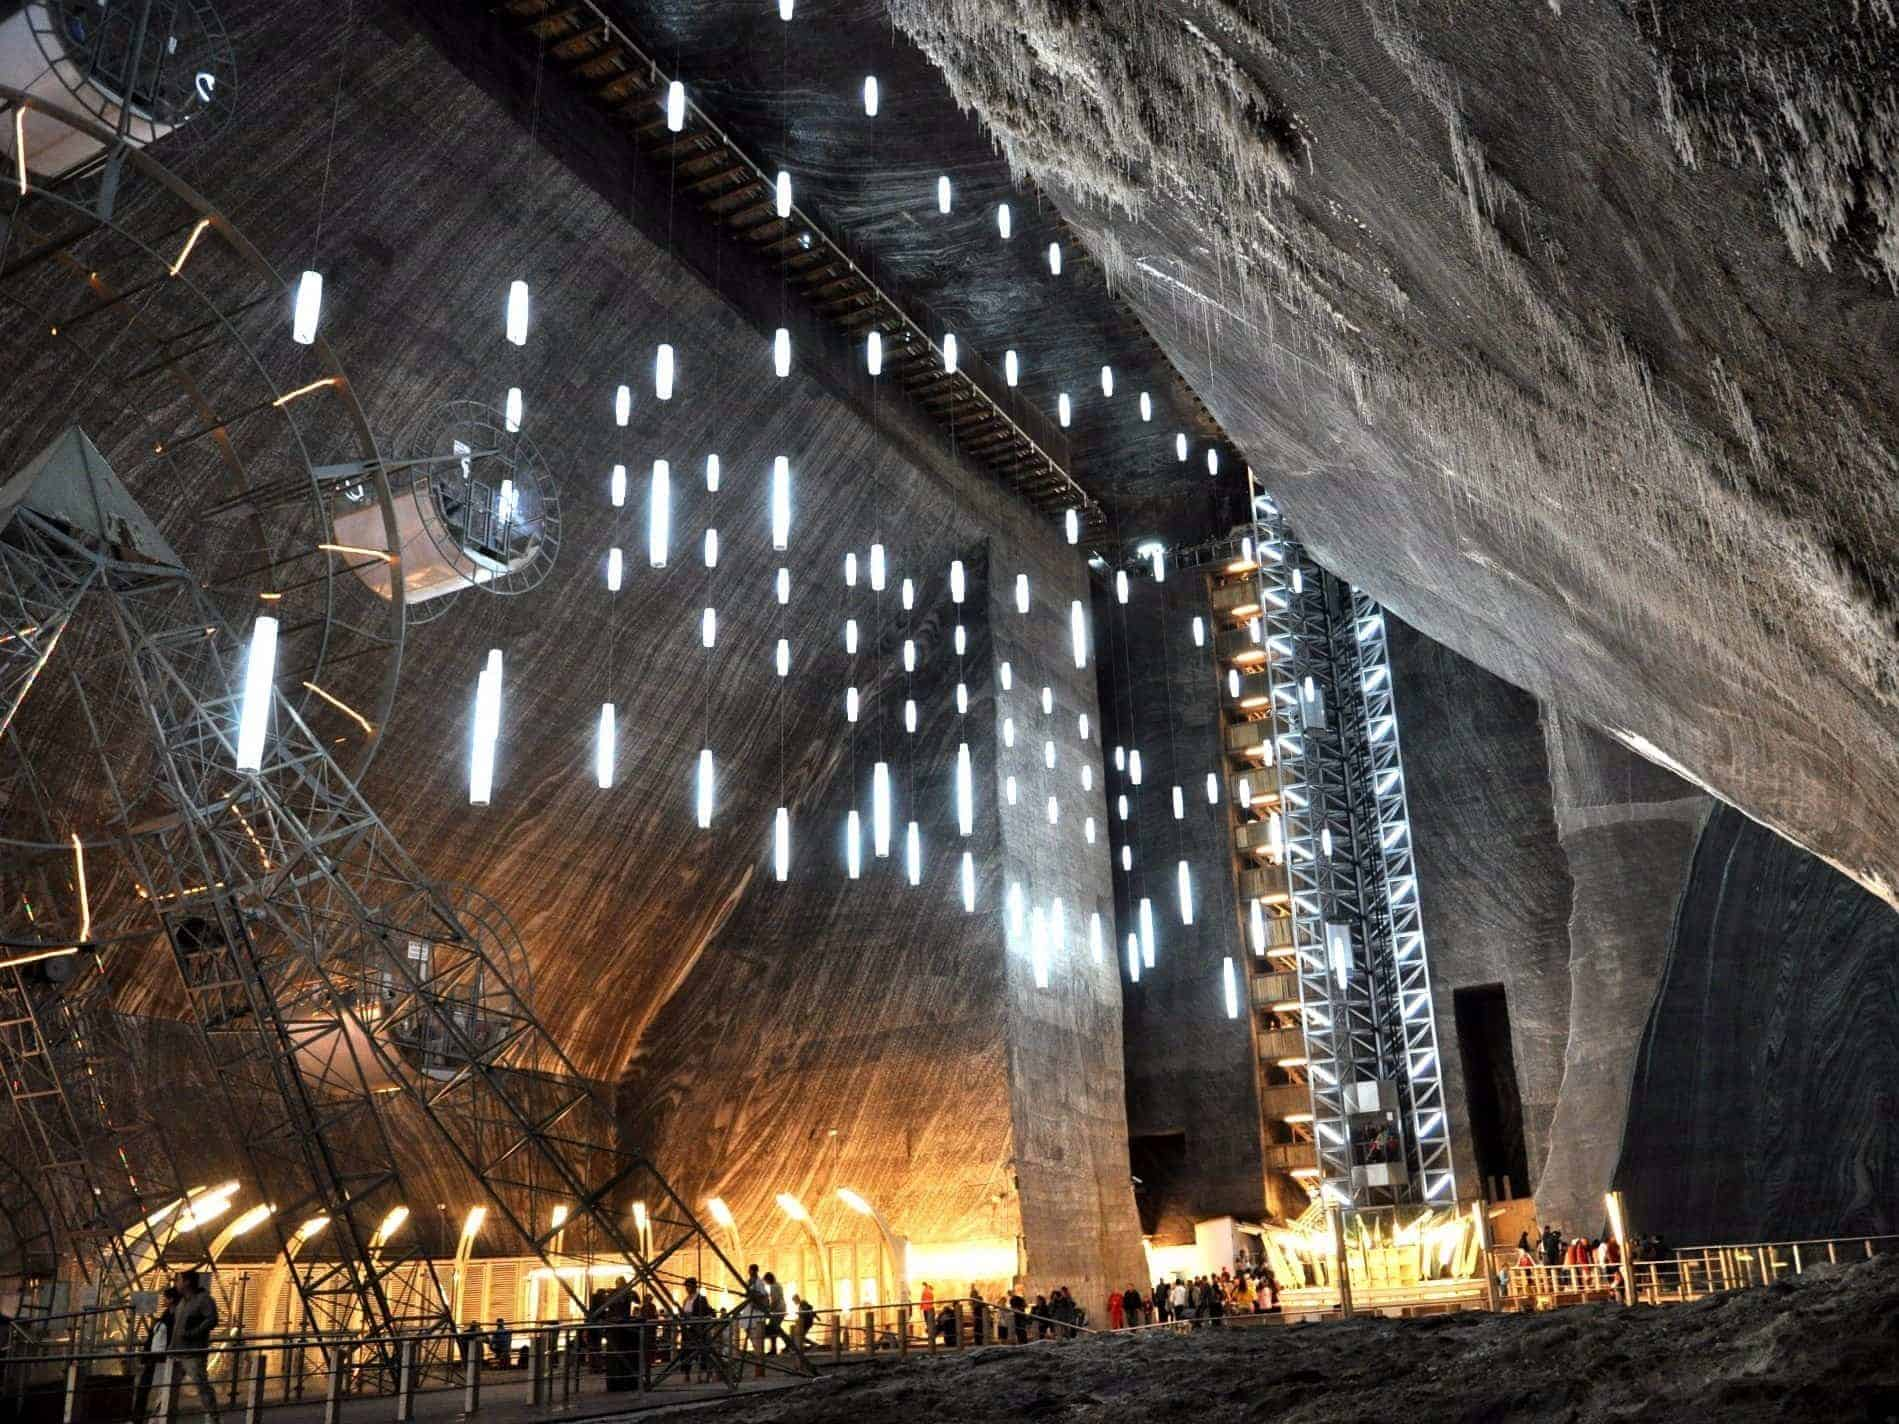 The mine is one of the oldest in the world and still maintains its majestic beauty.